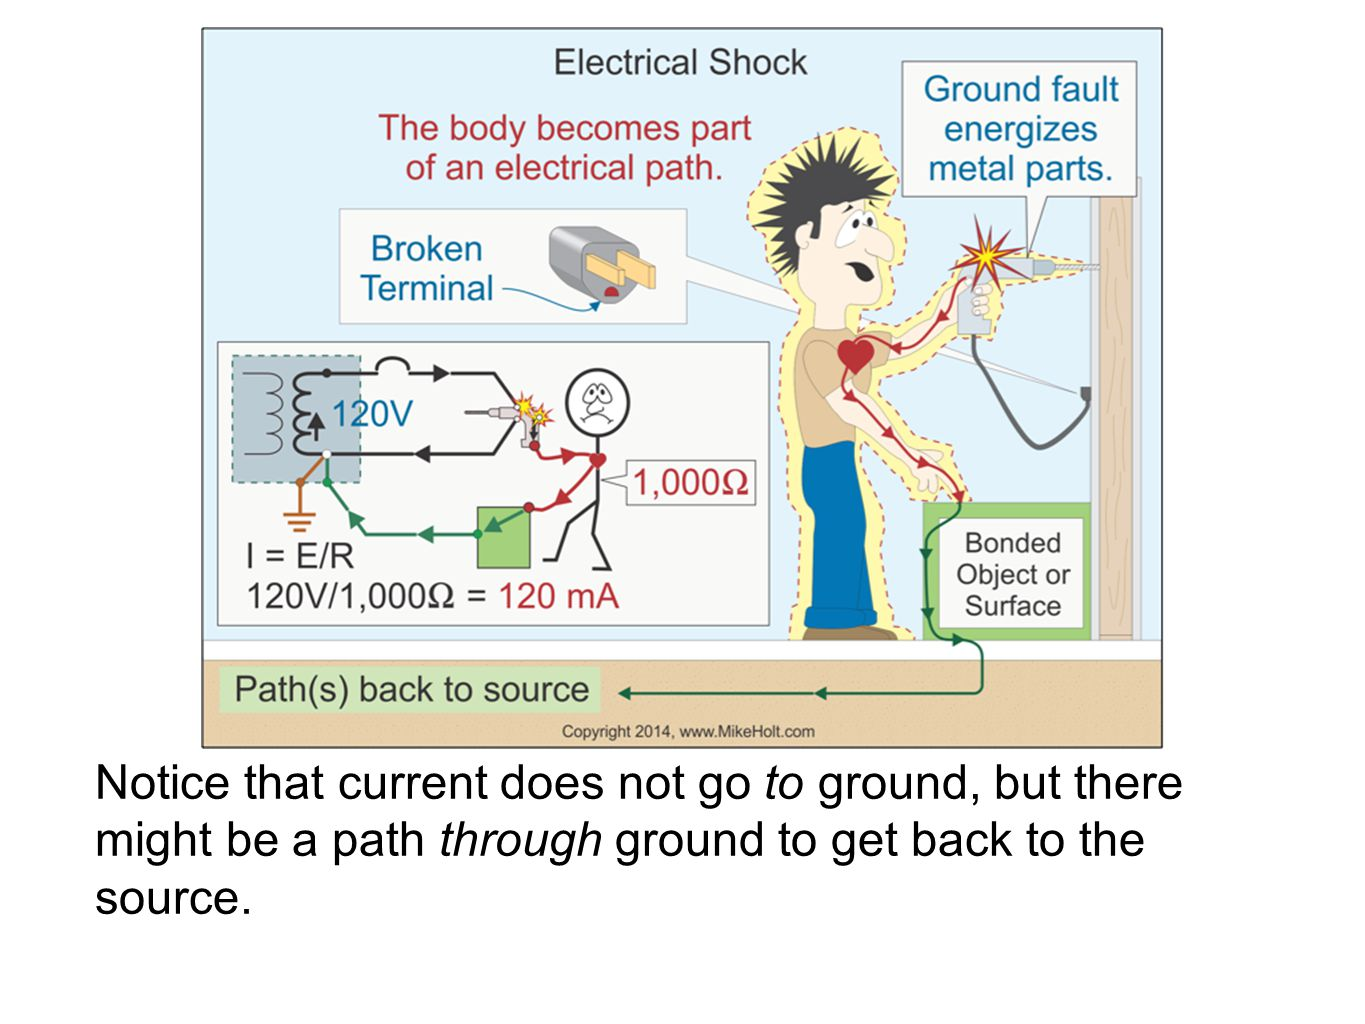 Notice that current does not go to ground, but there might be a path through ground to get back to the source.